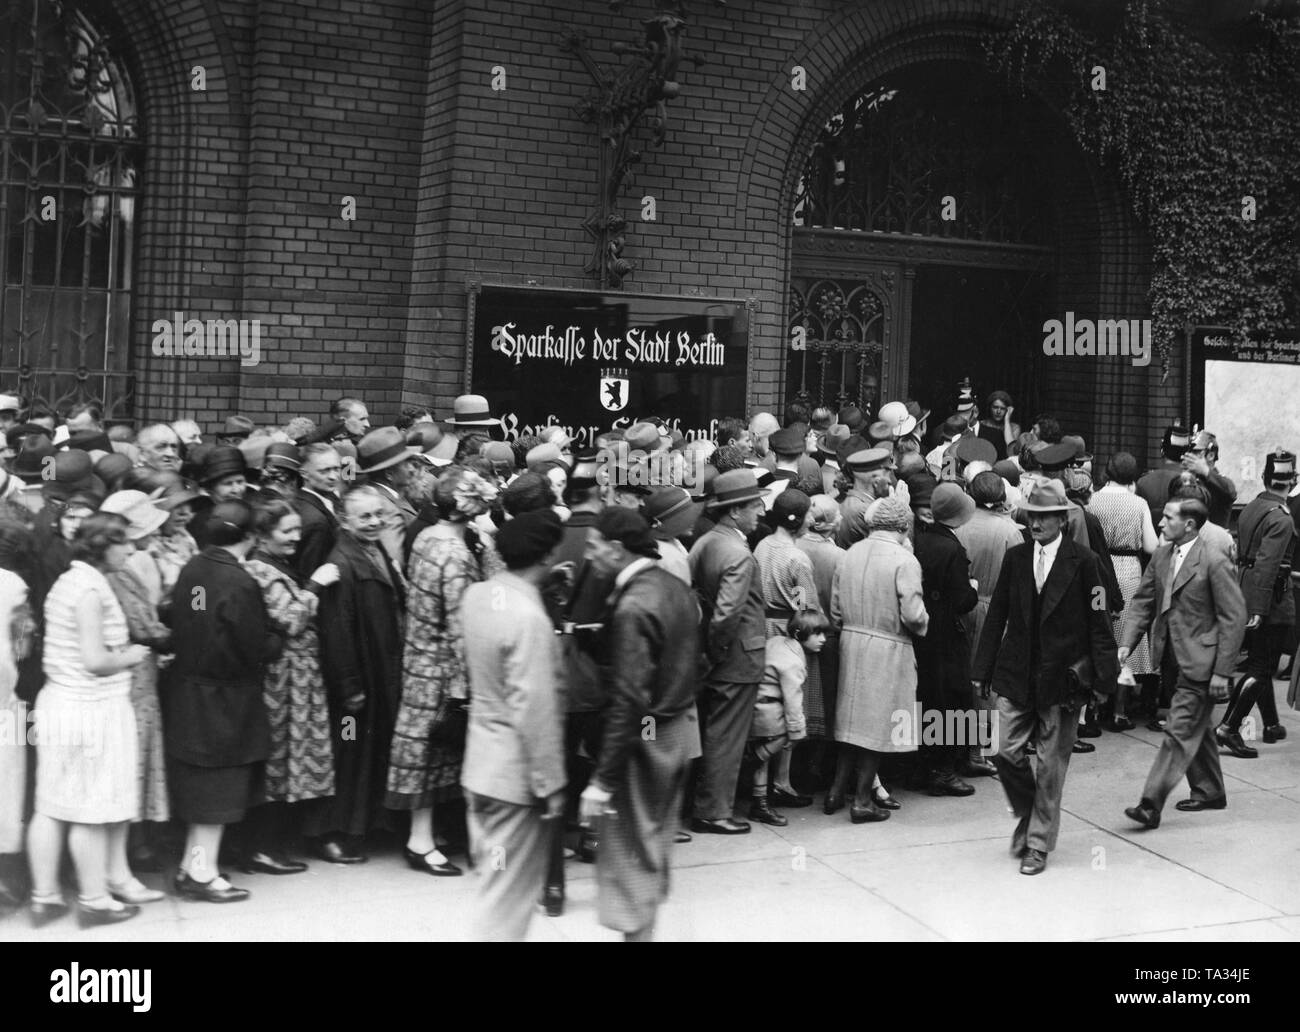 The bank crash leads to the suspension of payment of DANAT bank, depositors storm the counters as they remember the great inflation of 1923. - Stock Image